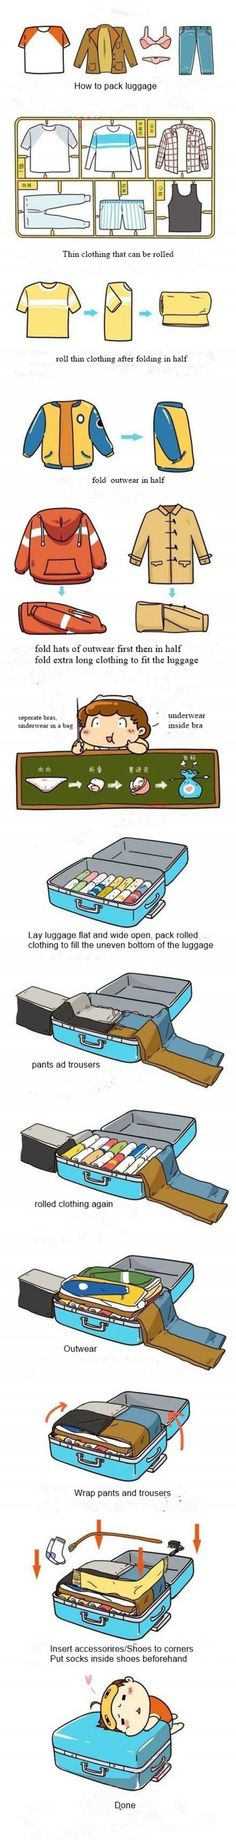 How to pack luggage more efficiently step by step DIY tutorial instructions